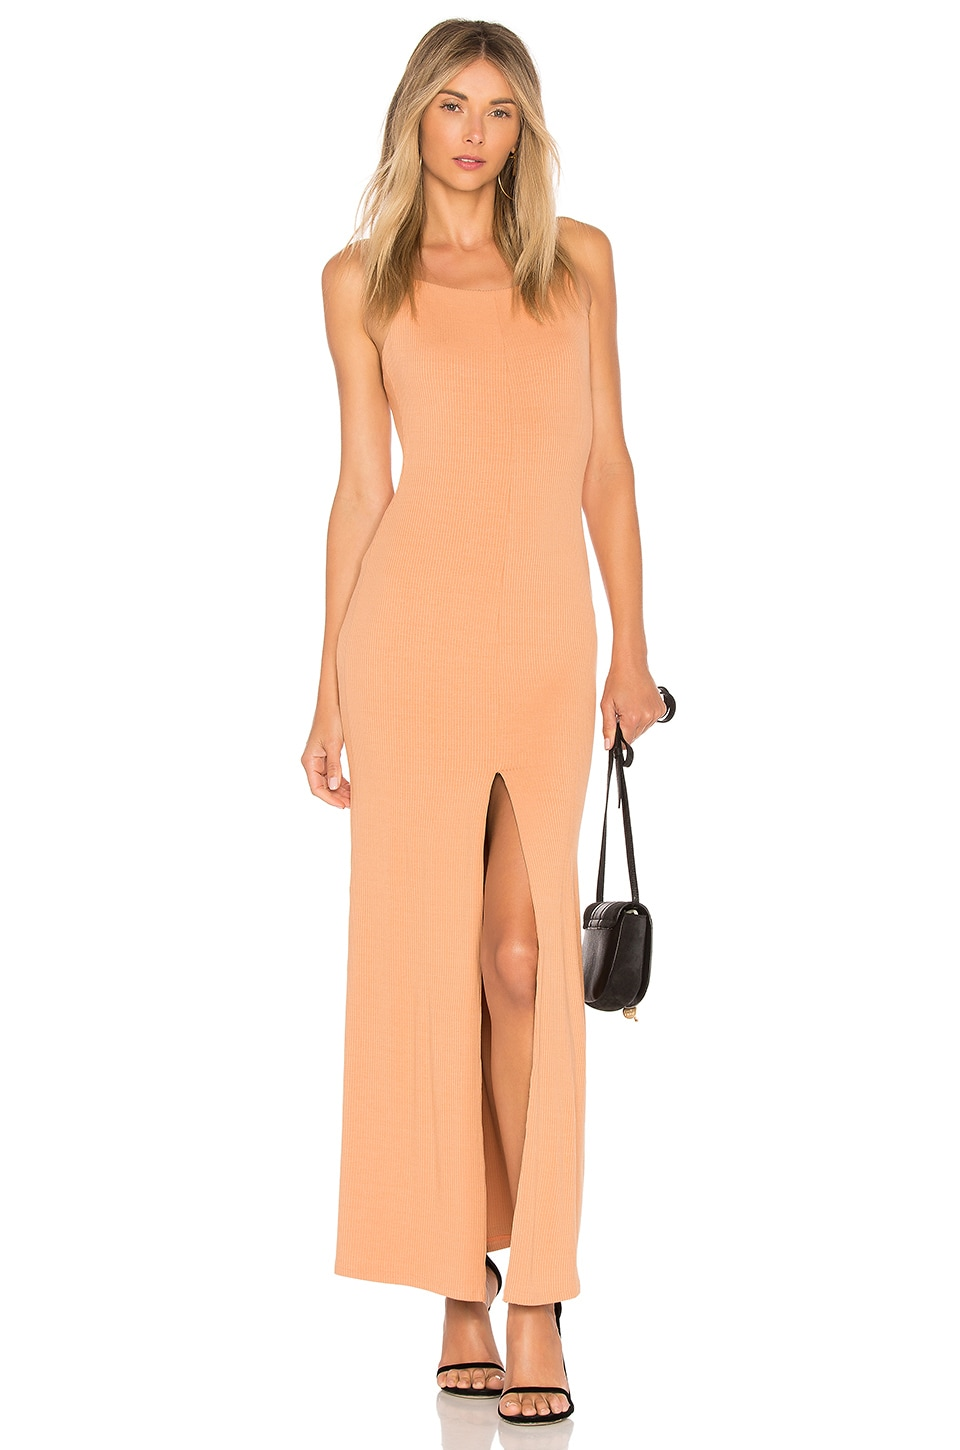 House of Harlow 1960 x REVOLVE Lina Maxi in Tea Rose